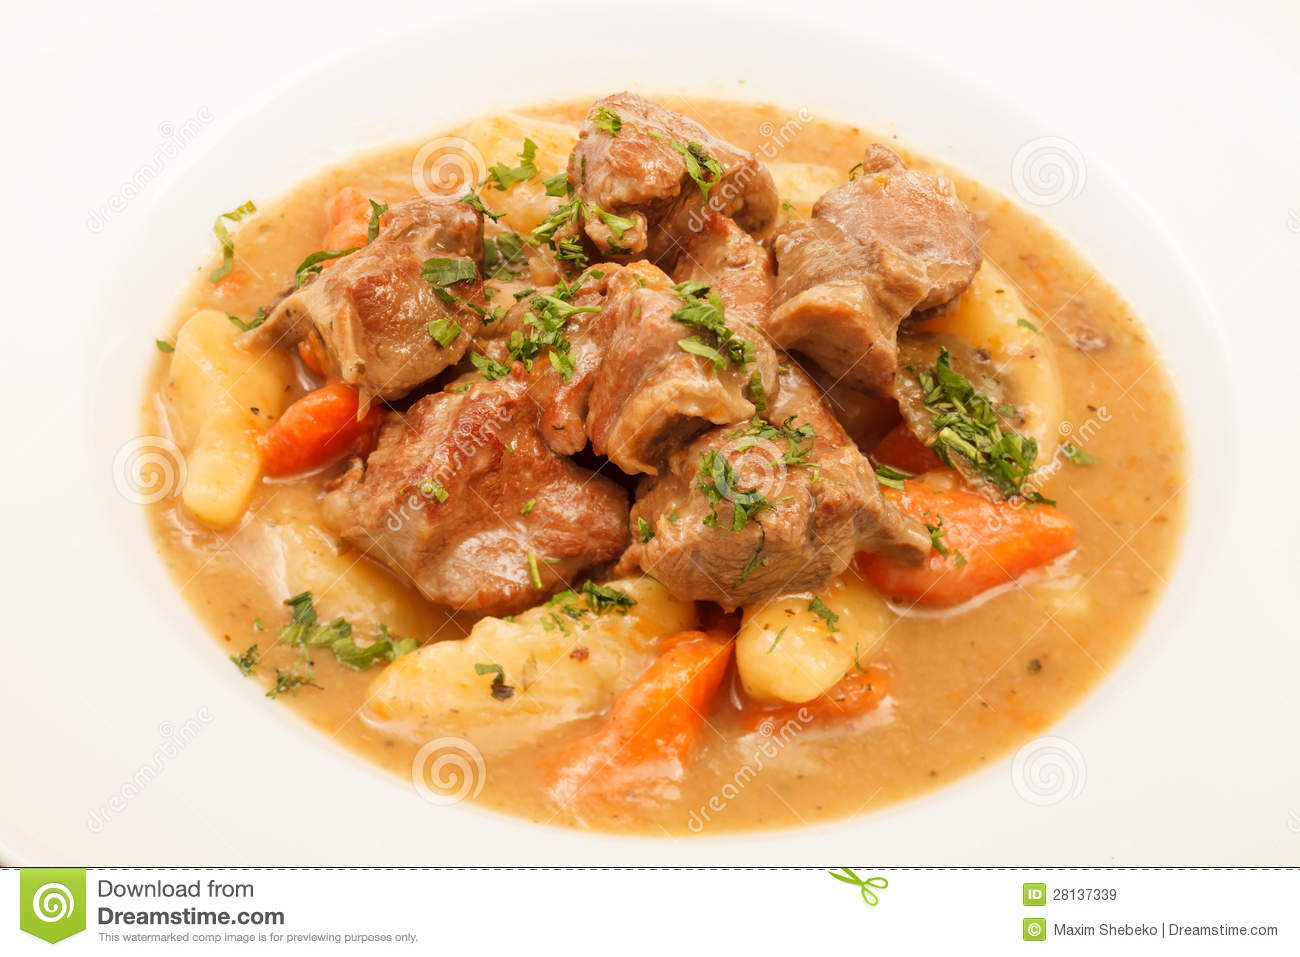 Beef Stew Royalty Free Stock Images   Image  28137339